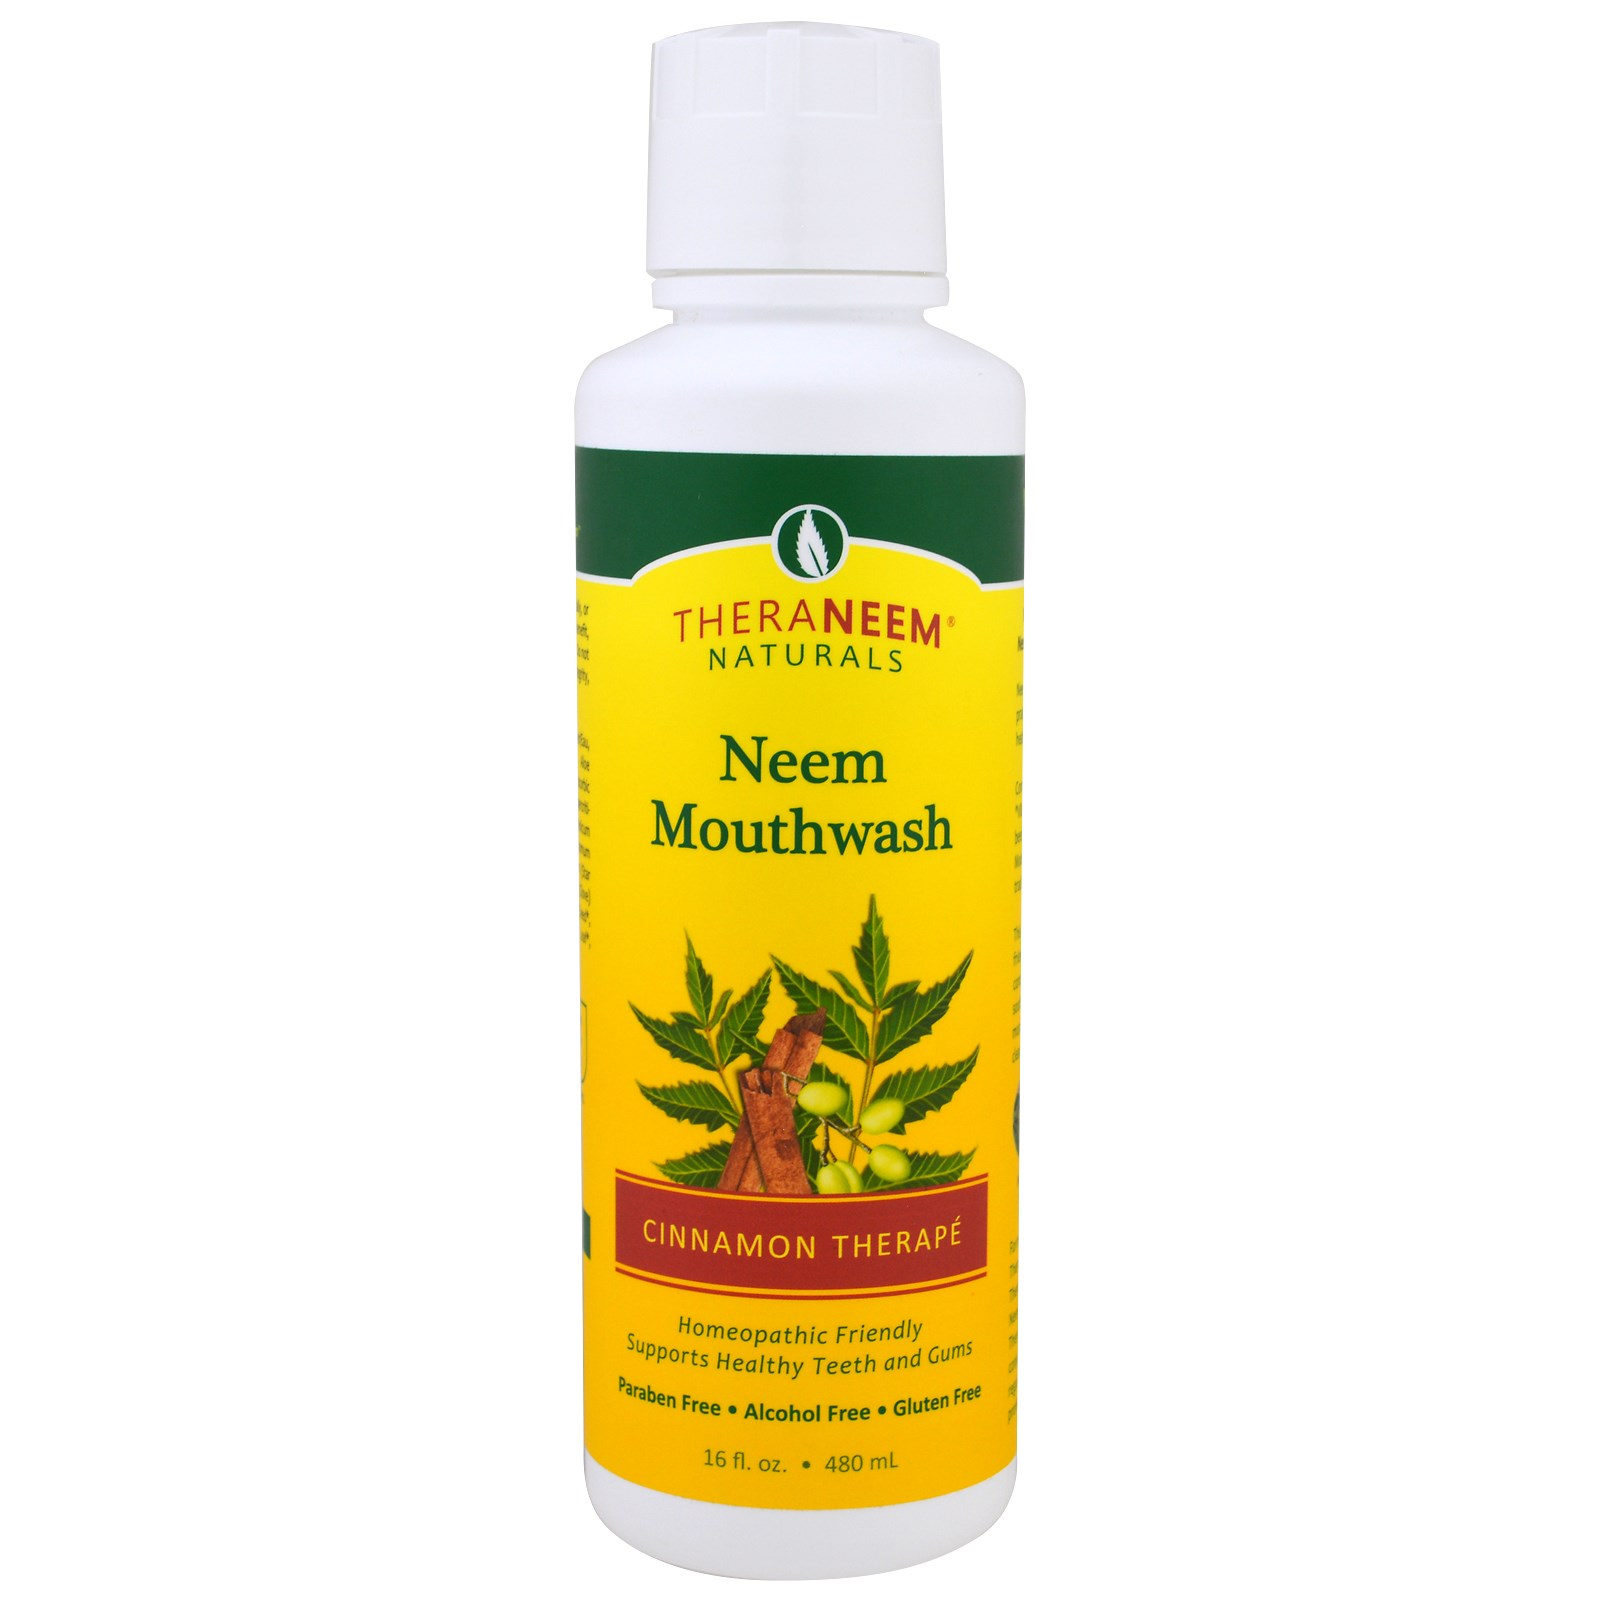 Organix South, TheraNeem Naturals, Cinnamon Therapé, Neem Mouthwash, 16 fl oz (480 ml)